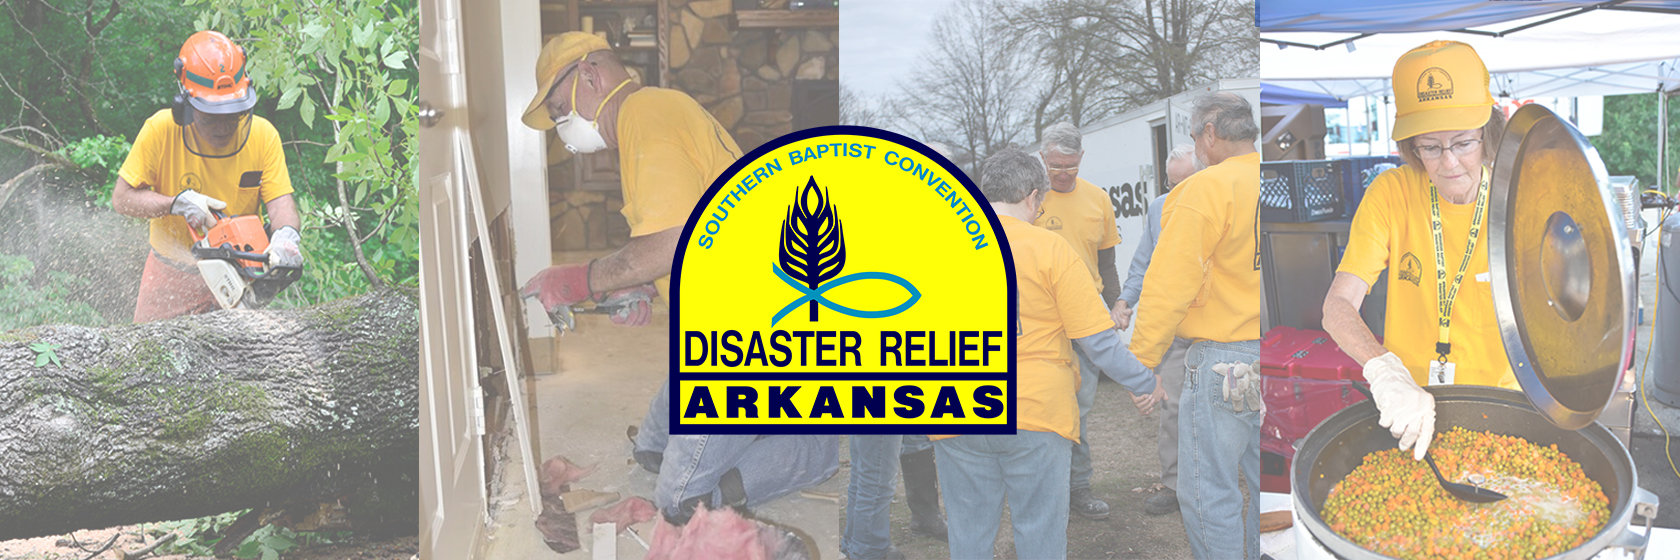 Visit abscdisasterrelief.org to learn more about training to serve in Arkansas Disaster Relief.